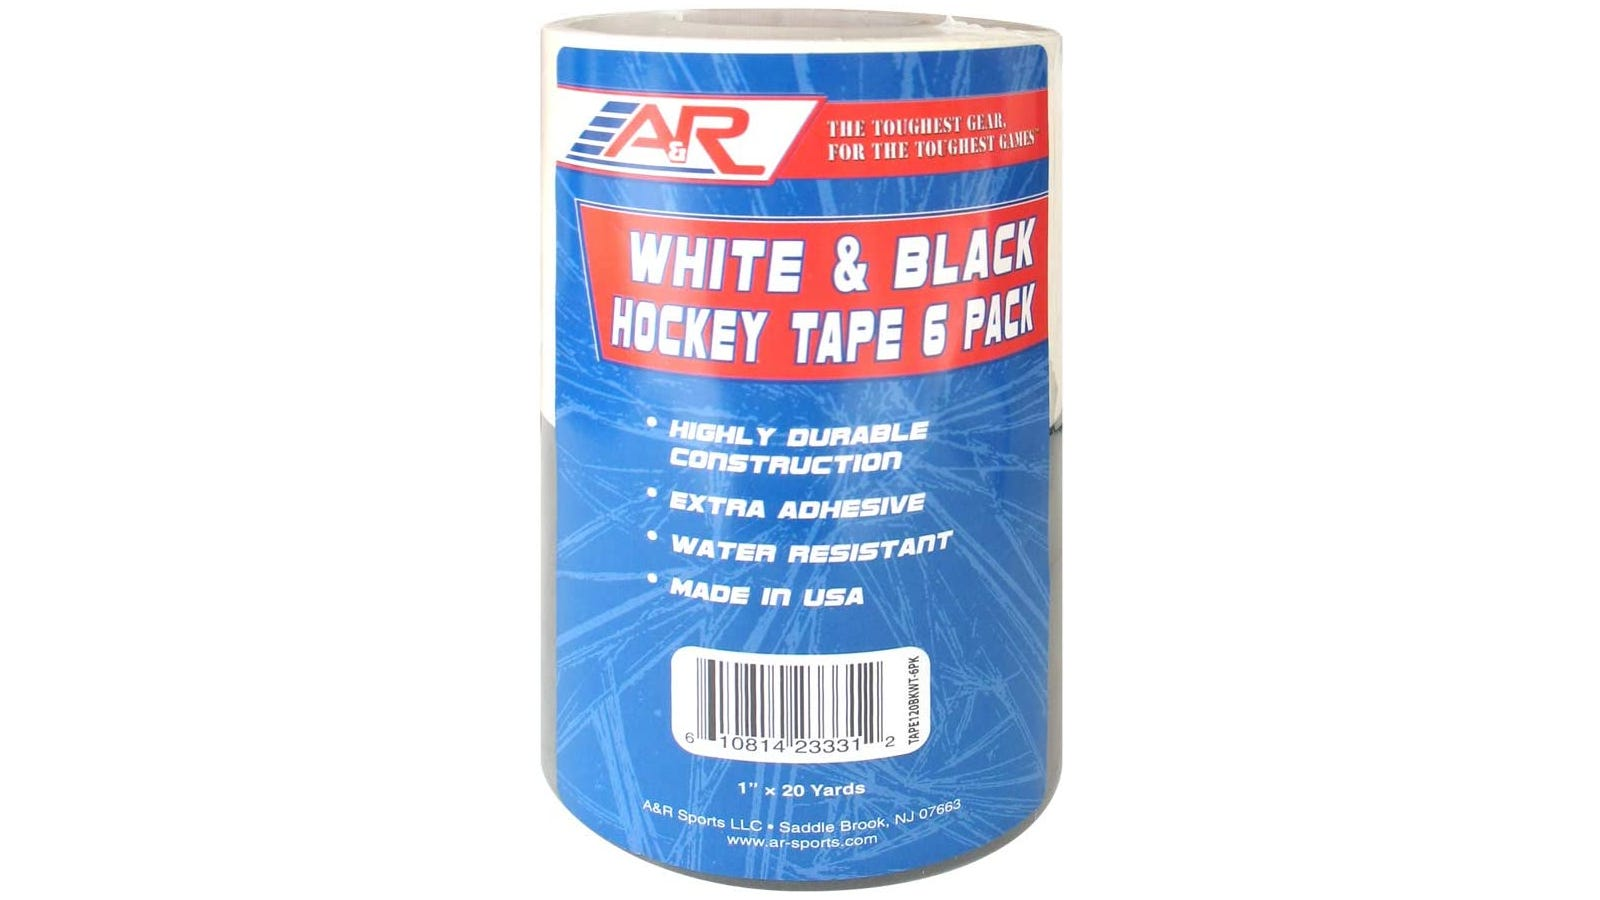 A six pack of black and white hockey tape wrapped in blue and red packaging.